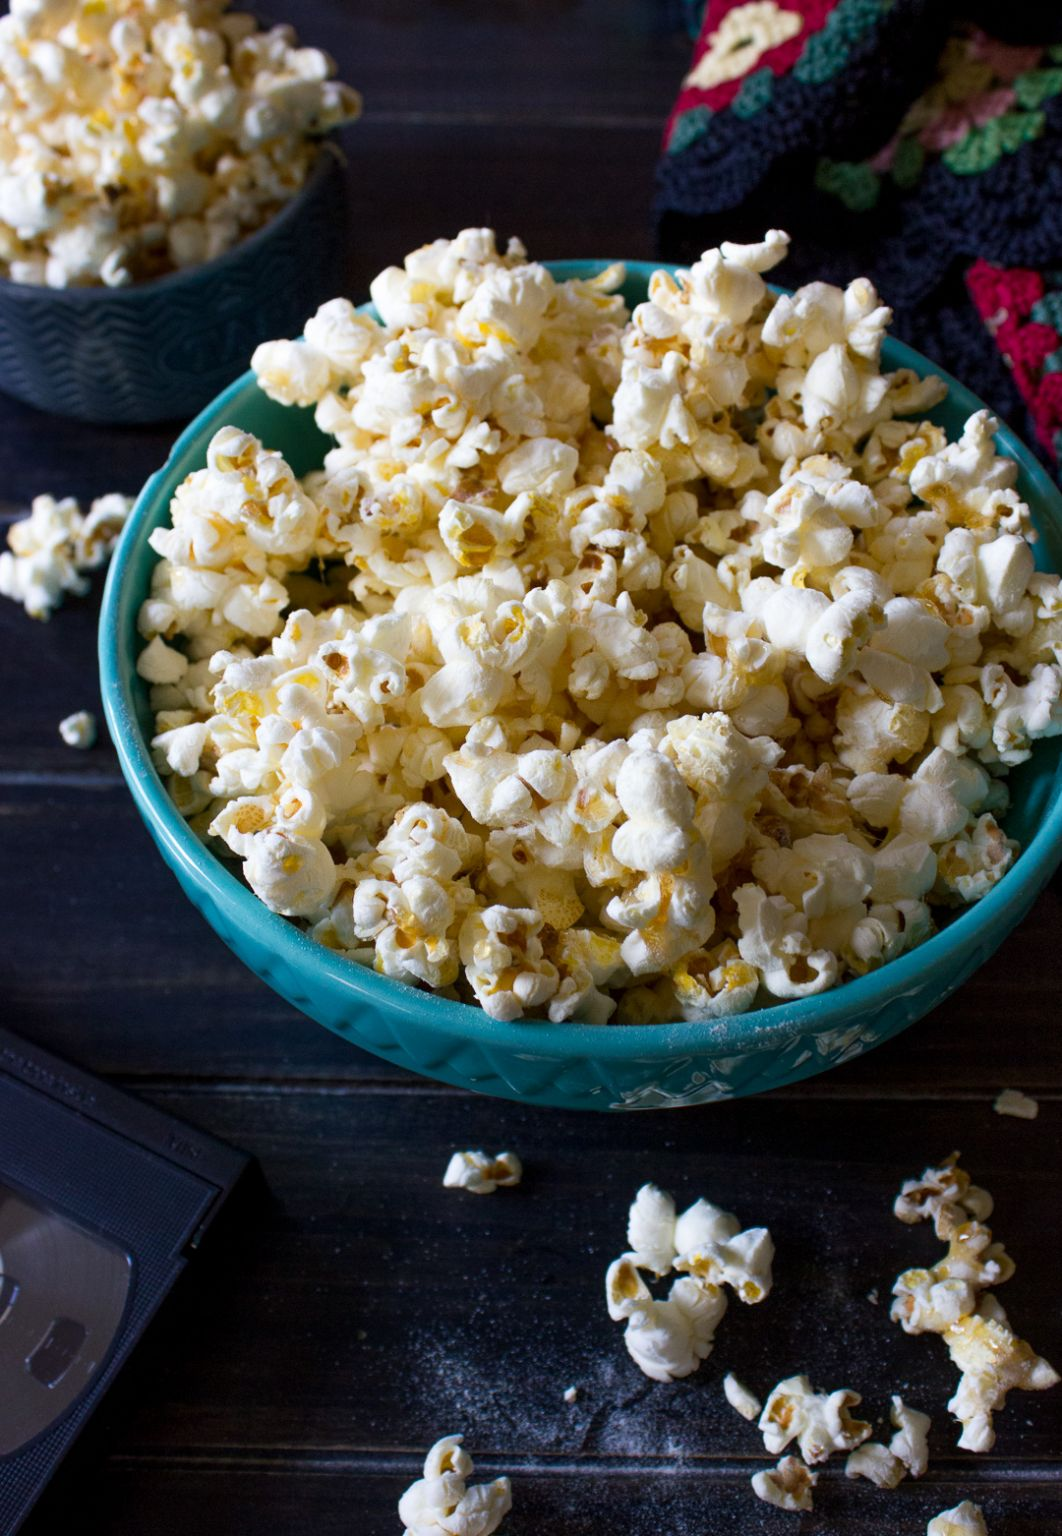 Half of the enjoyment of watching a movie is the popcorn! This recipe for Chicago Style Popcorn is loaded with caramel and, yes, cheese for a fantastic and addictive snack! The bowl will be empty before you know it!